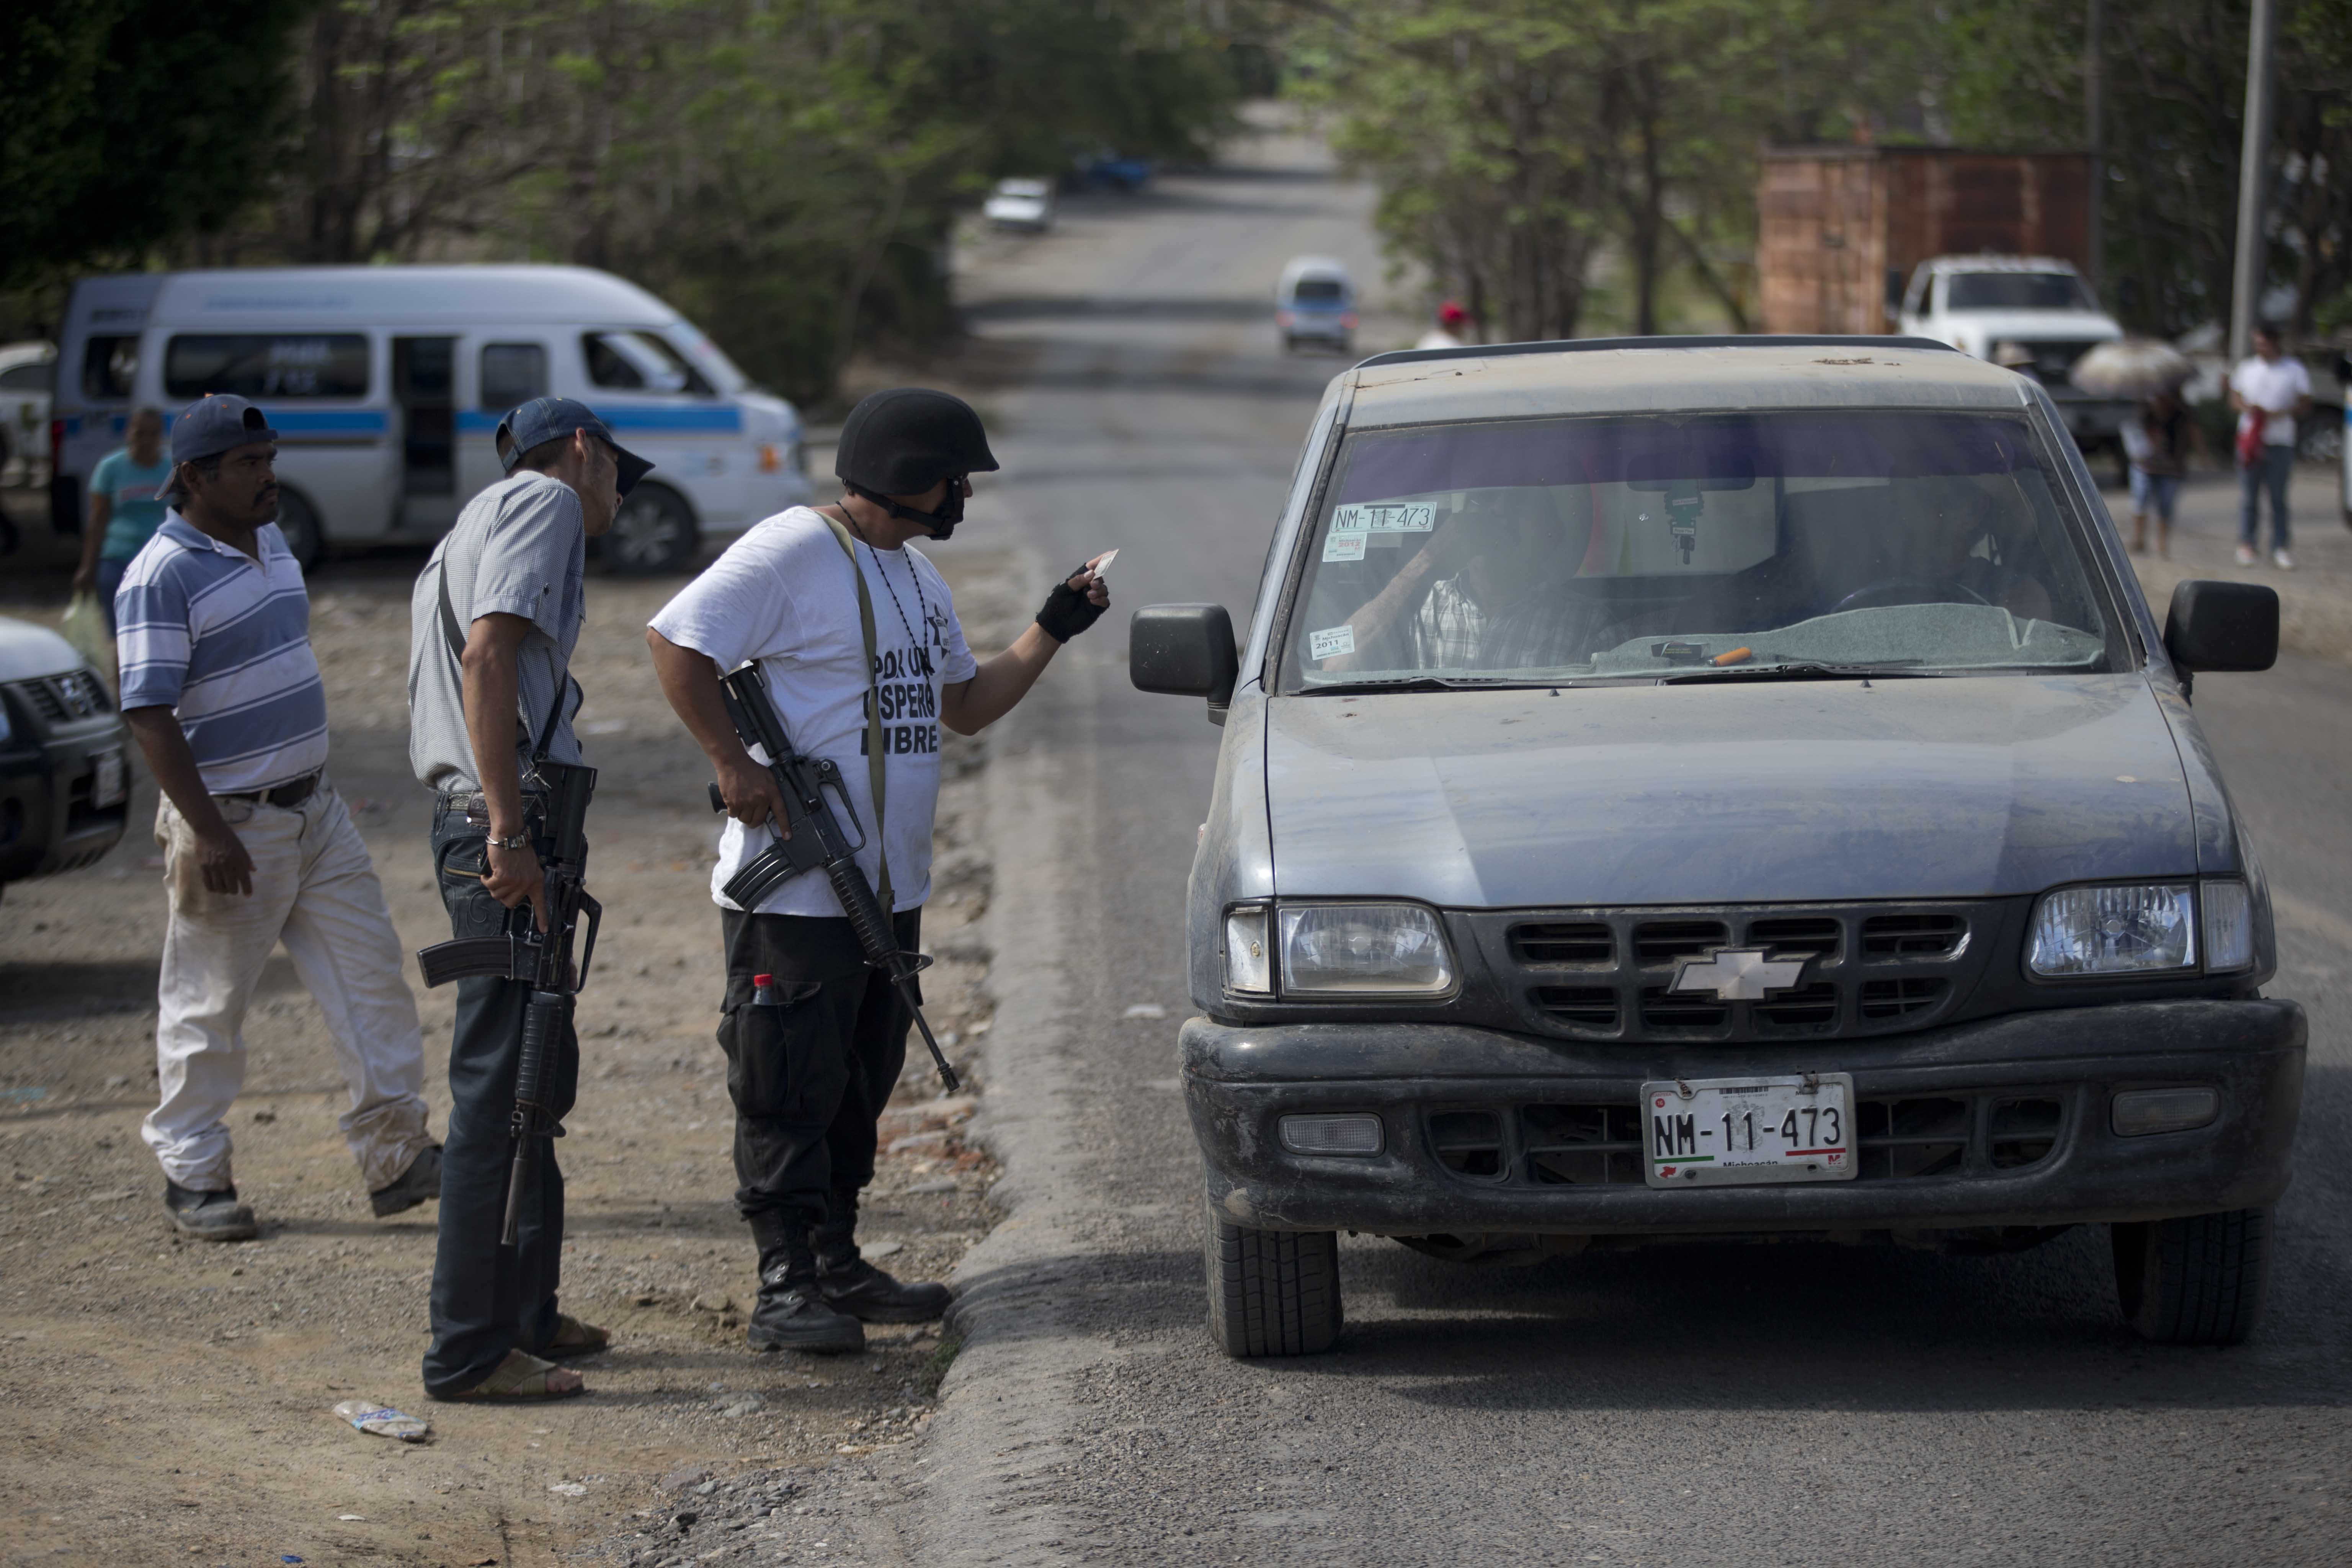 Armed men belonging to the Self-Defense Council of Michoacan (CAM) check the documents of people in a vehicle at a checkpoint set up by the vigilante group in La Mira on the outskirts of the seaport of Lazaro Cardenas in western Mexico, Friday, May 9, 2014. A ceremony on Saturday will mark the registering of thousands of guns by the federal government and an agreement that the self-defense groups will either join a new official rural police force or return to their normal lives and act as voluntary reserves when called on. But tension remained on Friday in the coastal part of the state outside the port of Lazaro Cardenas, where some self-defense groups plan to continue as they are, defending their territory without registering their arms. (AP Photo/Eduardo Verdugo)